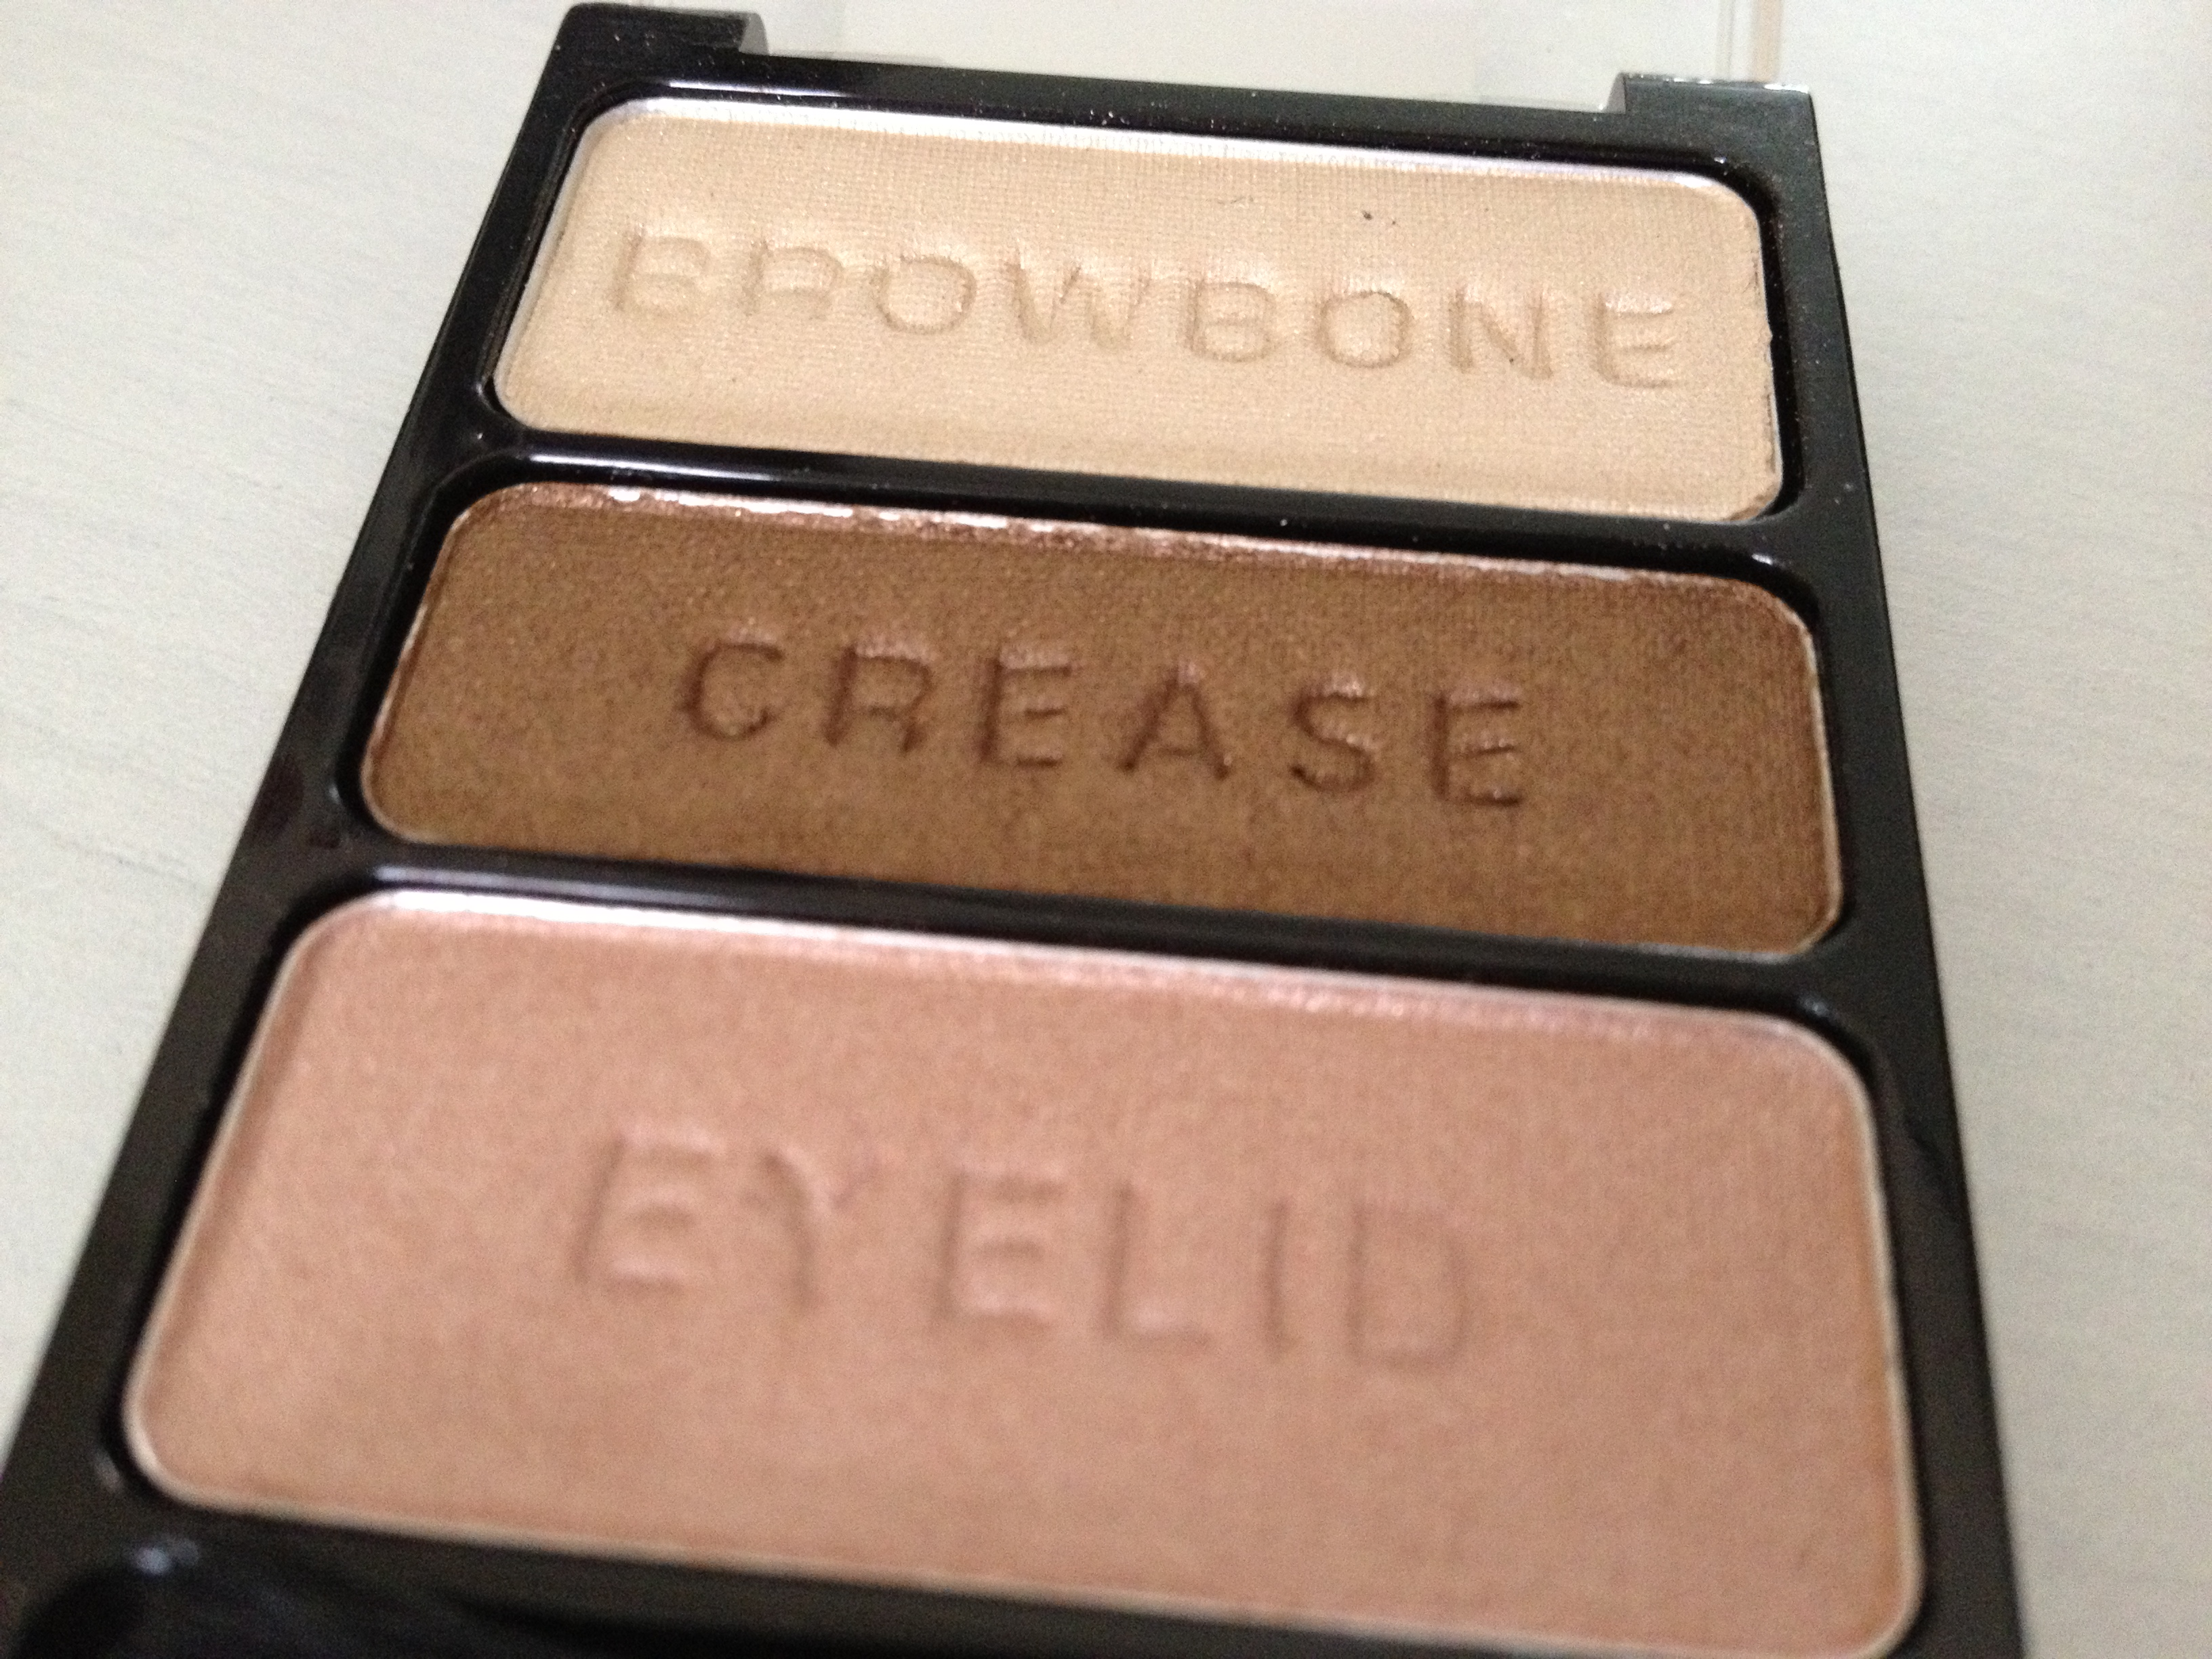 Wet_N_Wild_Eyeshadow_Palette_'Walking_On_Eggshells' (2)